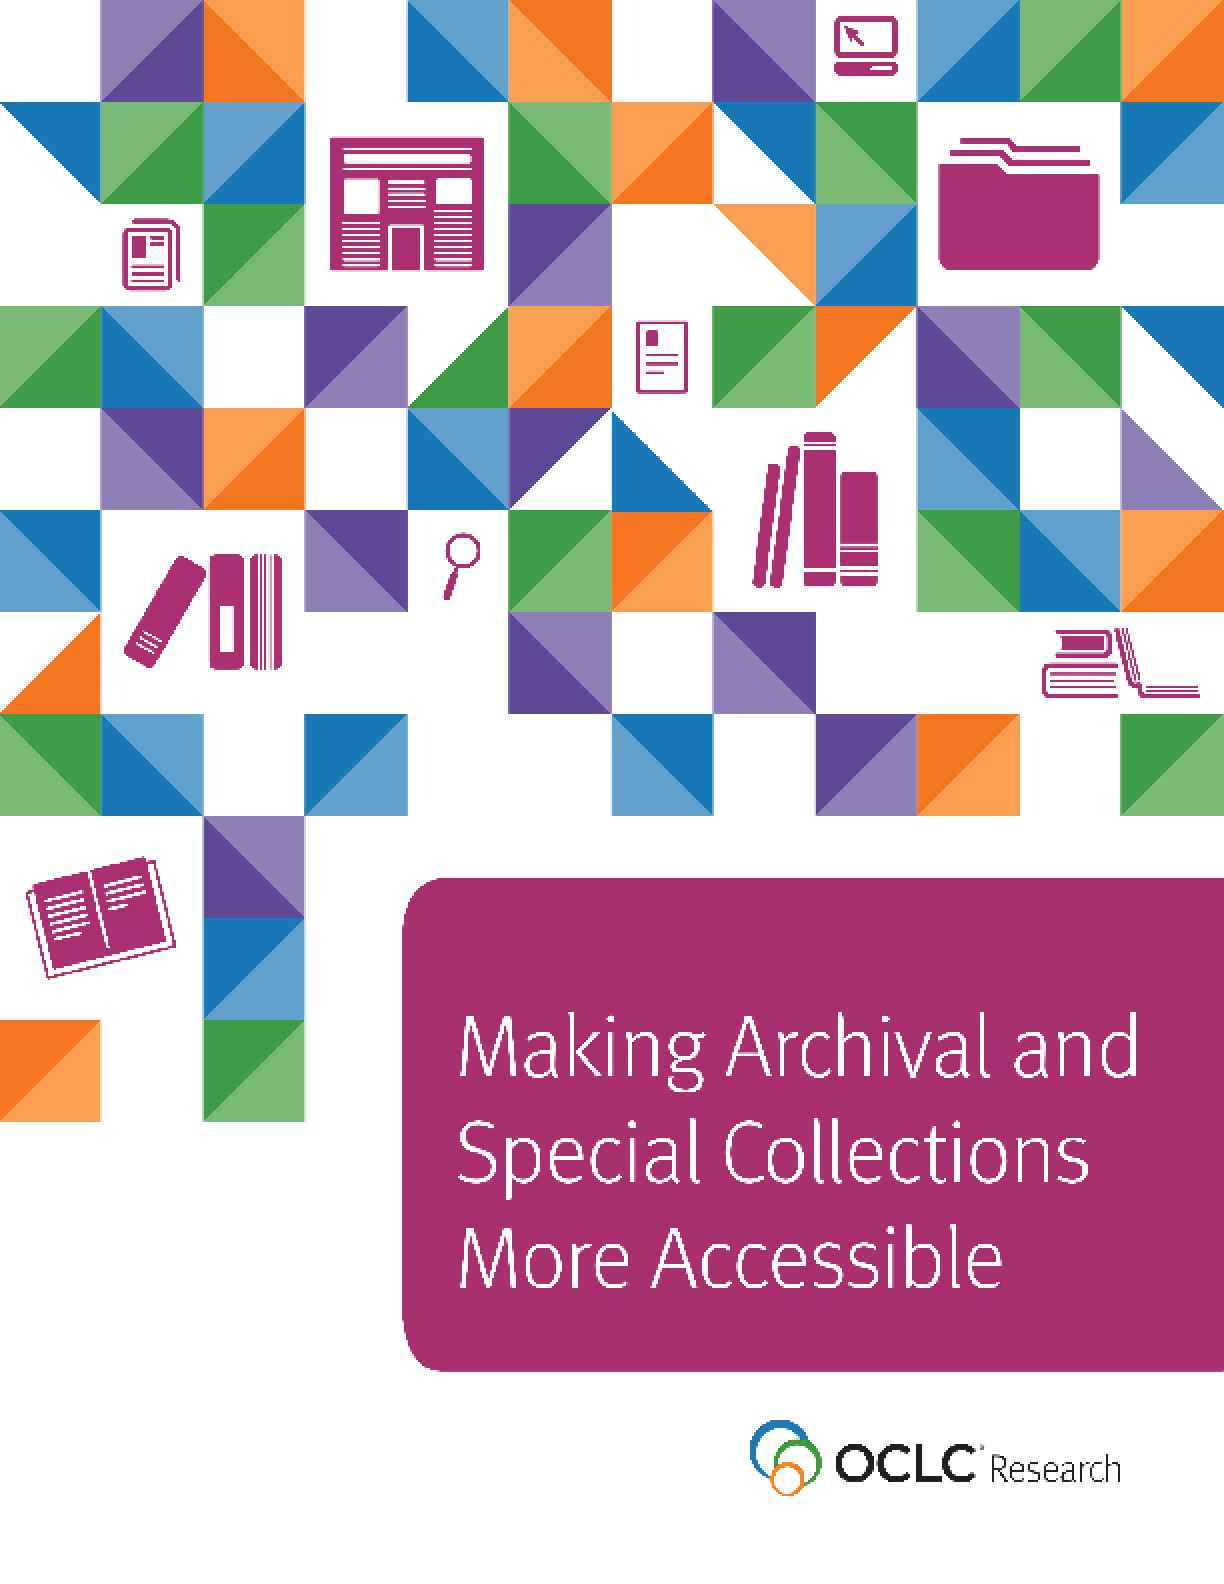 Making Archival and Special Collections More Accessible